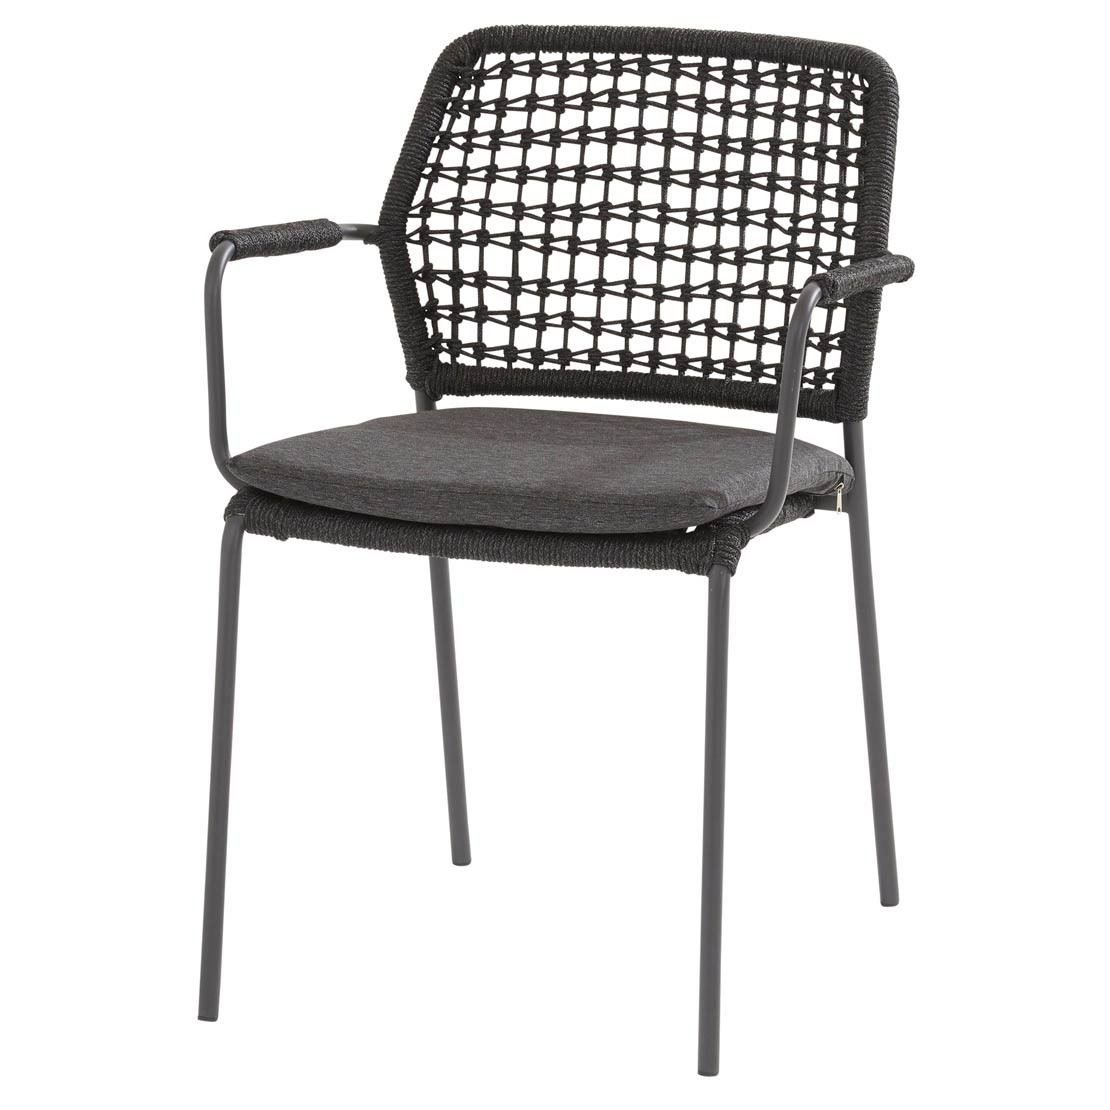 Barista stacking chair Anthracite with cushion